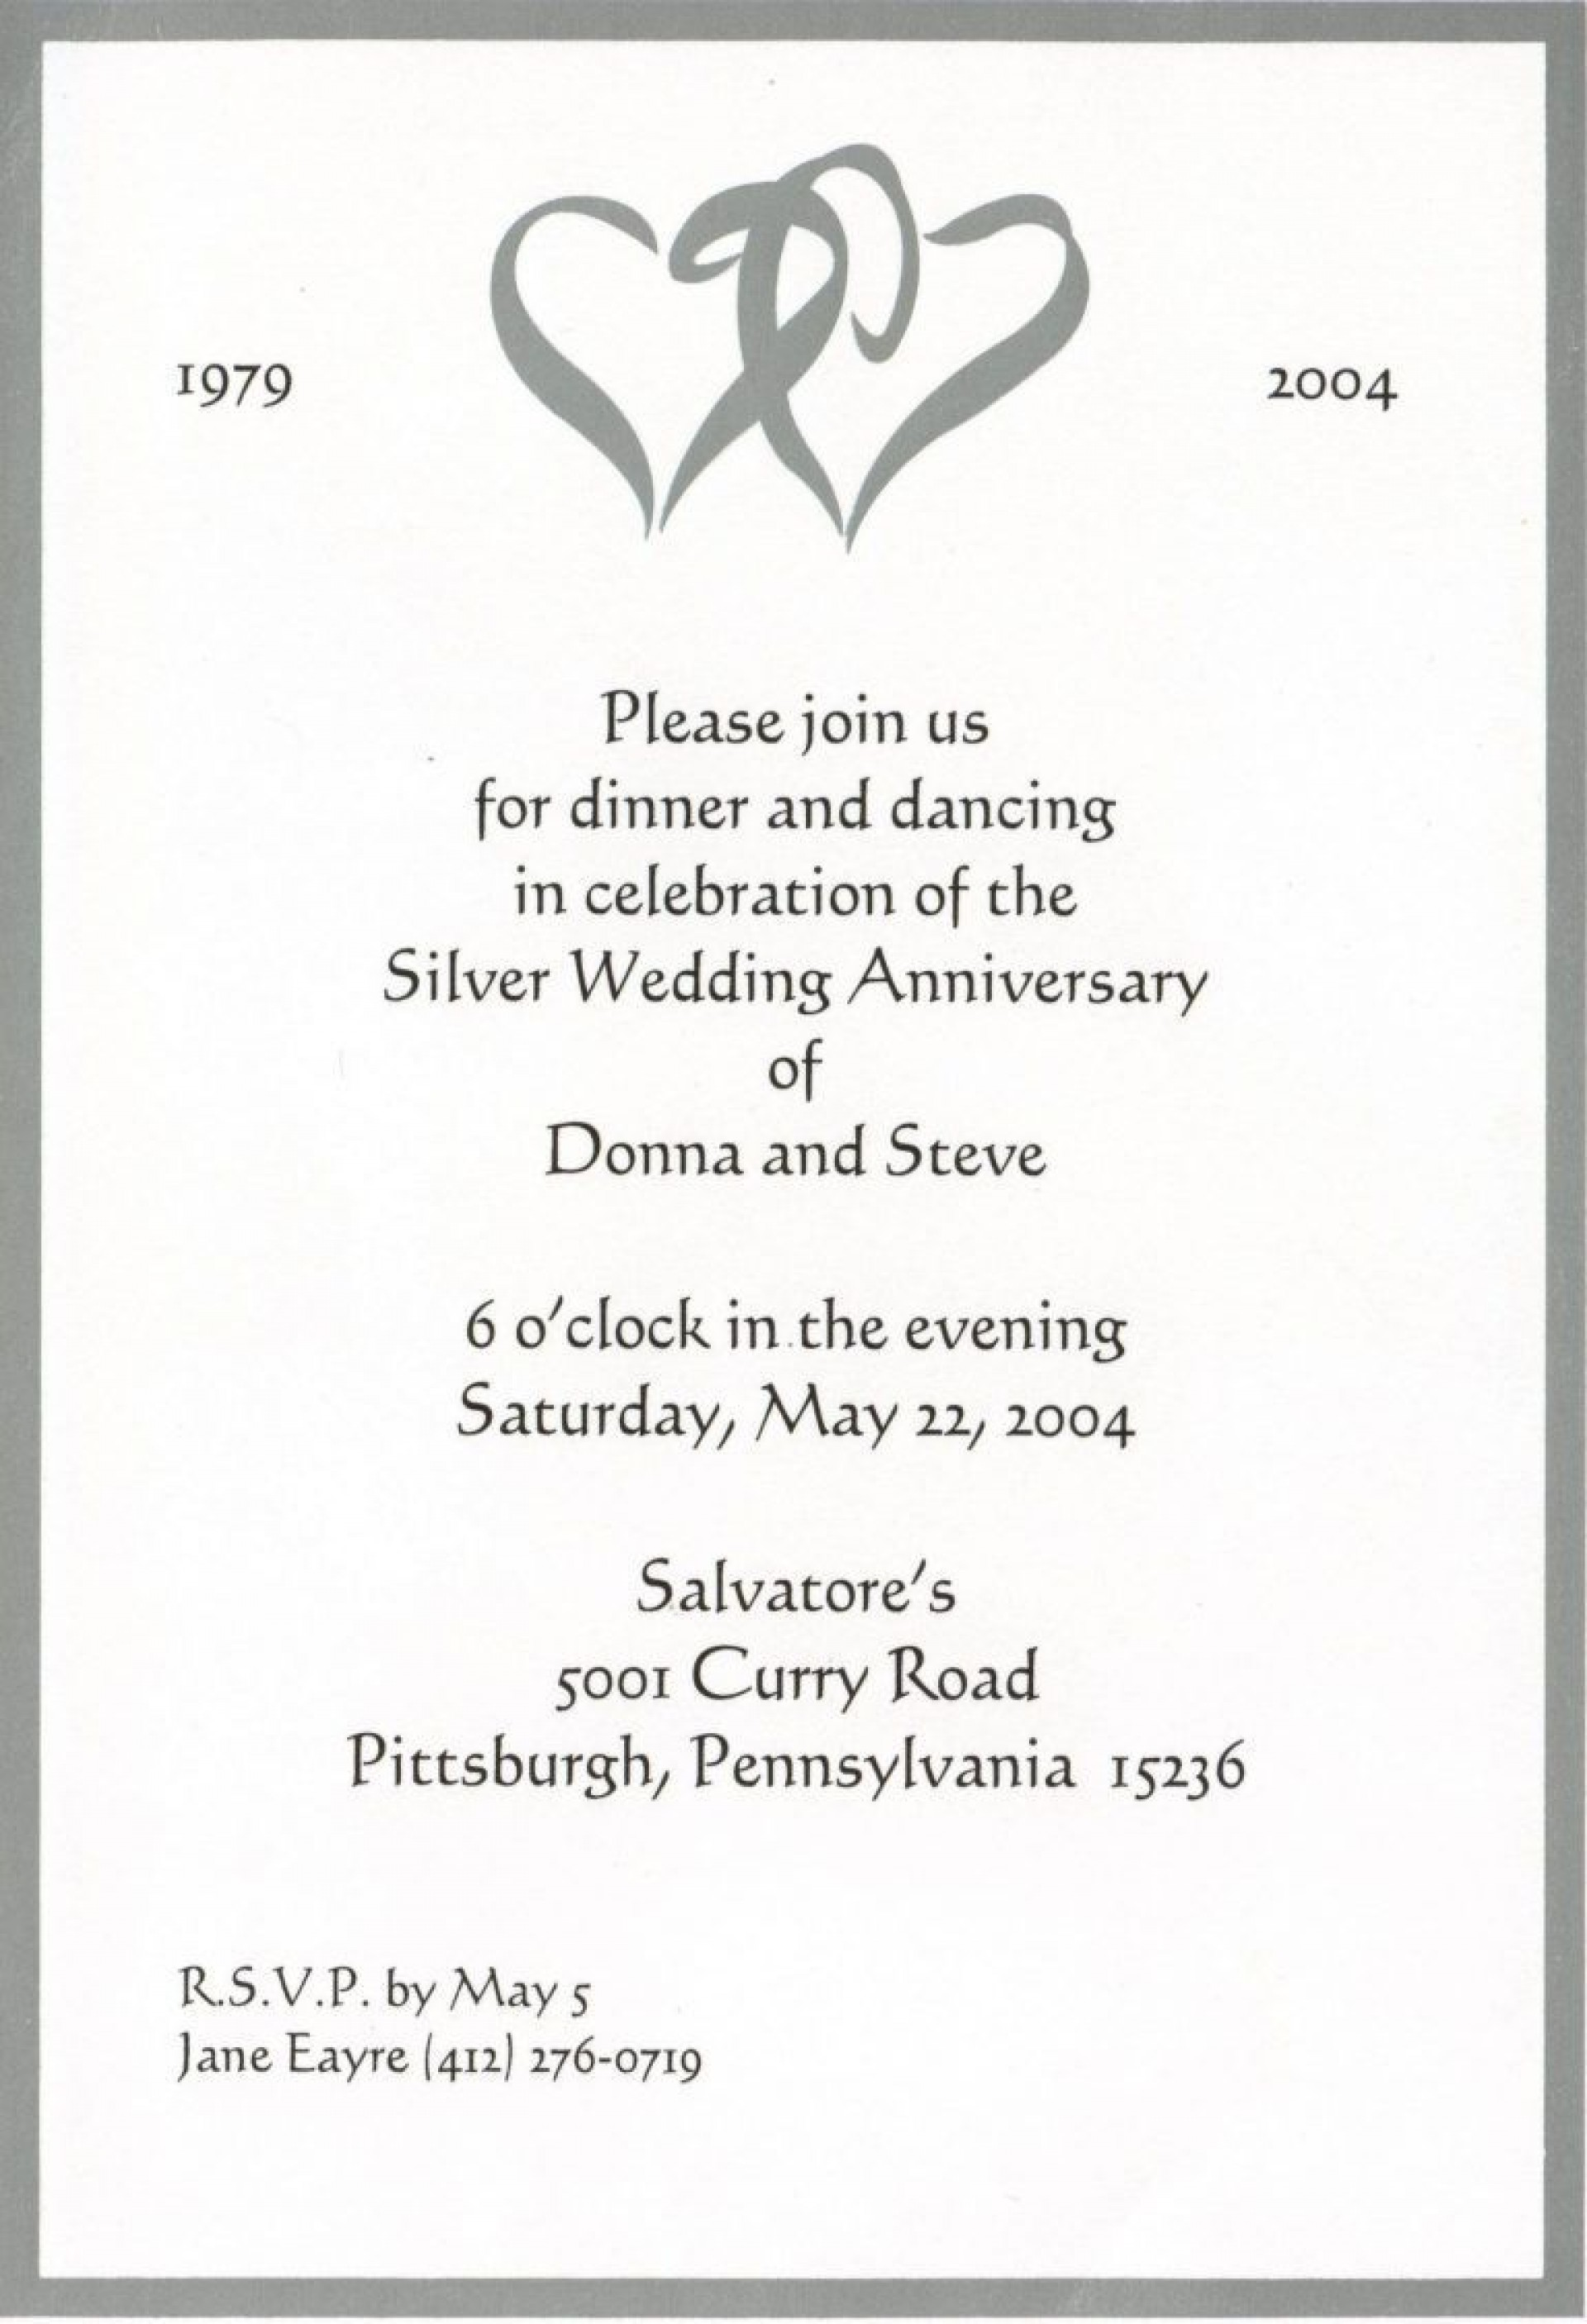 000 Magnificent 50th Wedding Anniversary Party Invitation Template Image  Templates Free1920